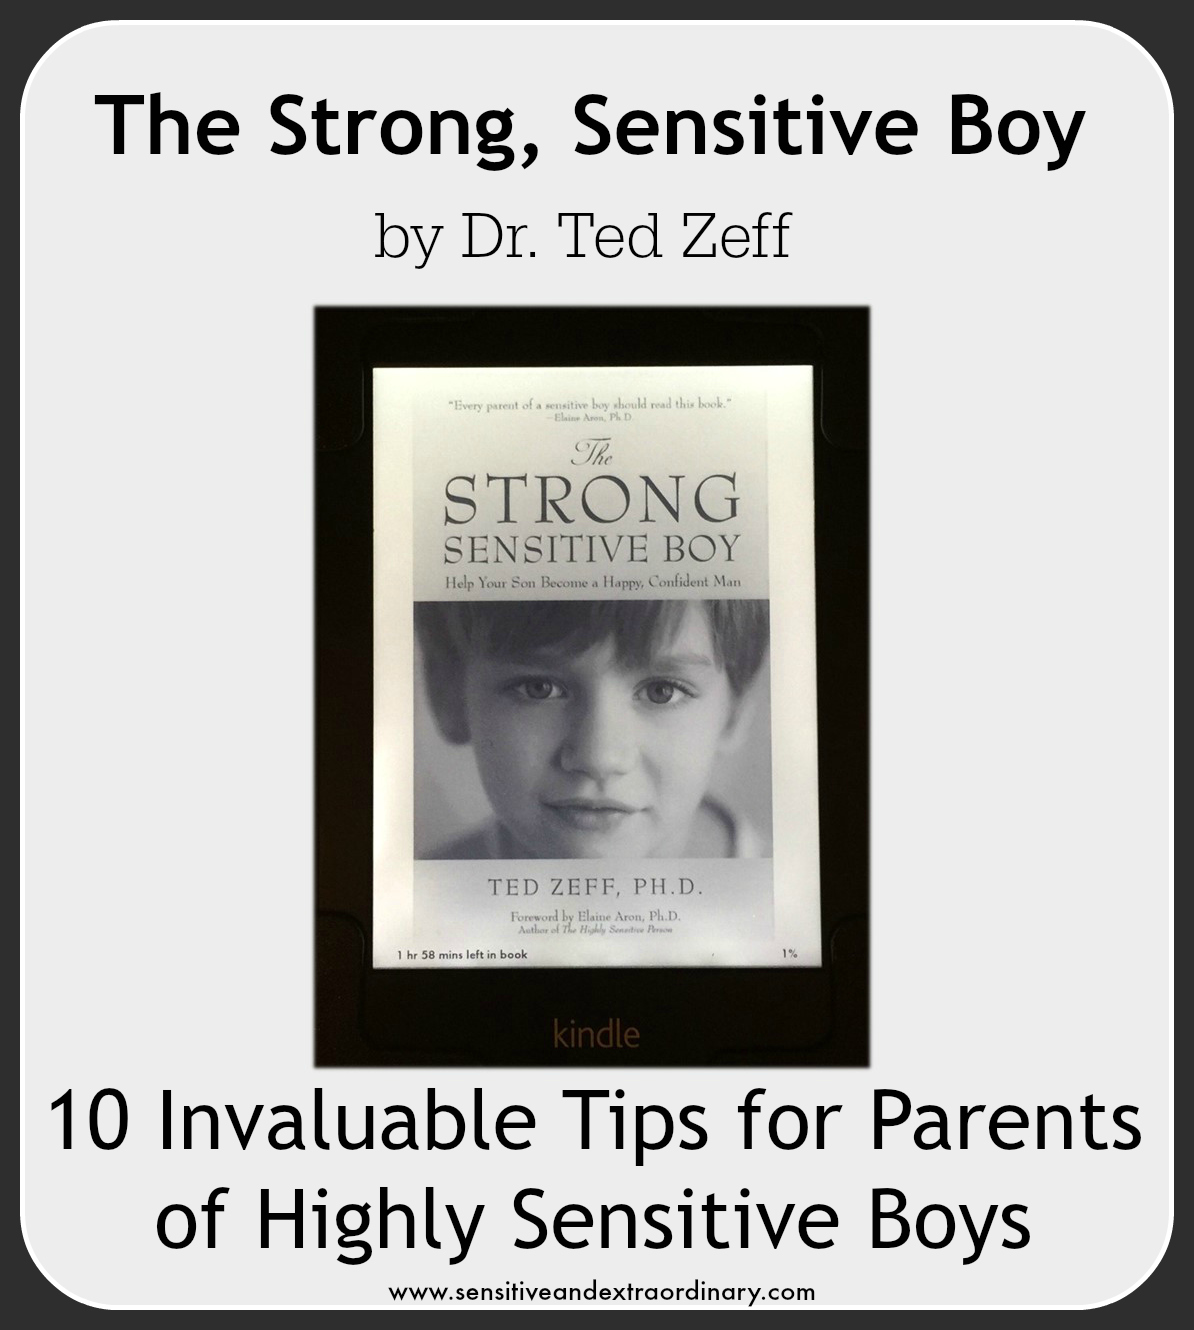 The Strong Sensitive Boy by Dr. Ted Zeff, a Book Review, 10 Invaluable Tips for Parents of Highly Sensitive Boys